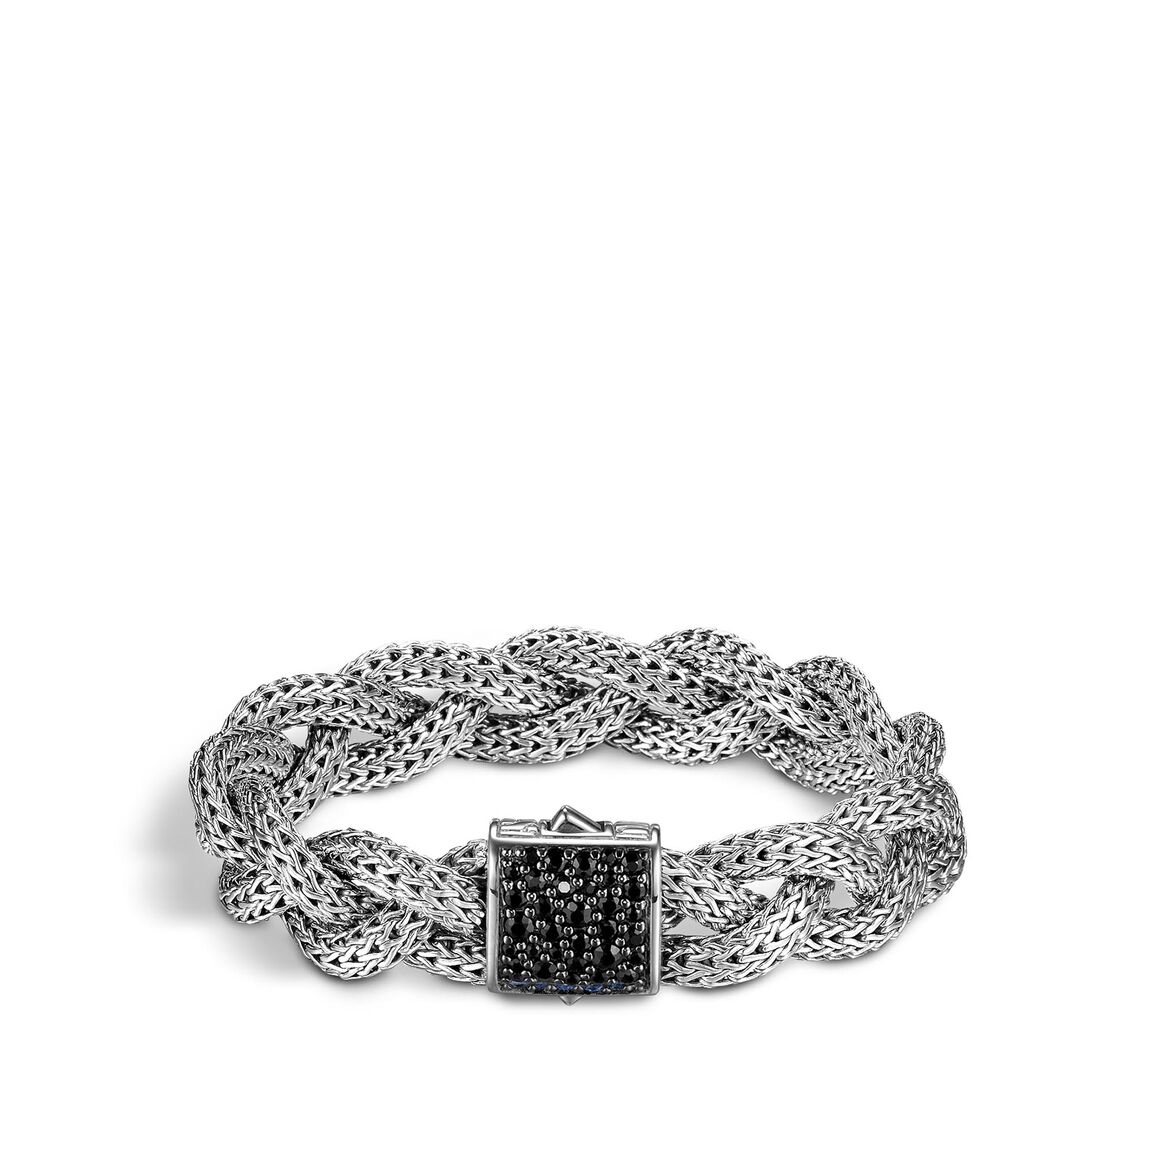 Braided Chain 13.5MM Woven Bracelet in Silver with Gemstone